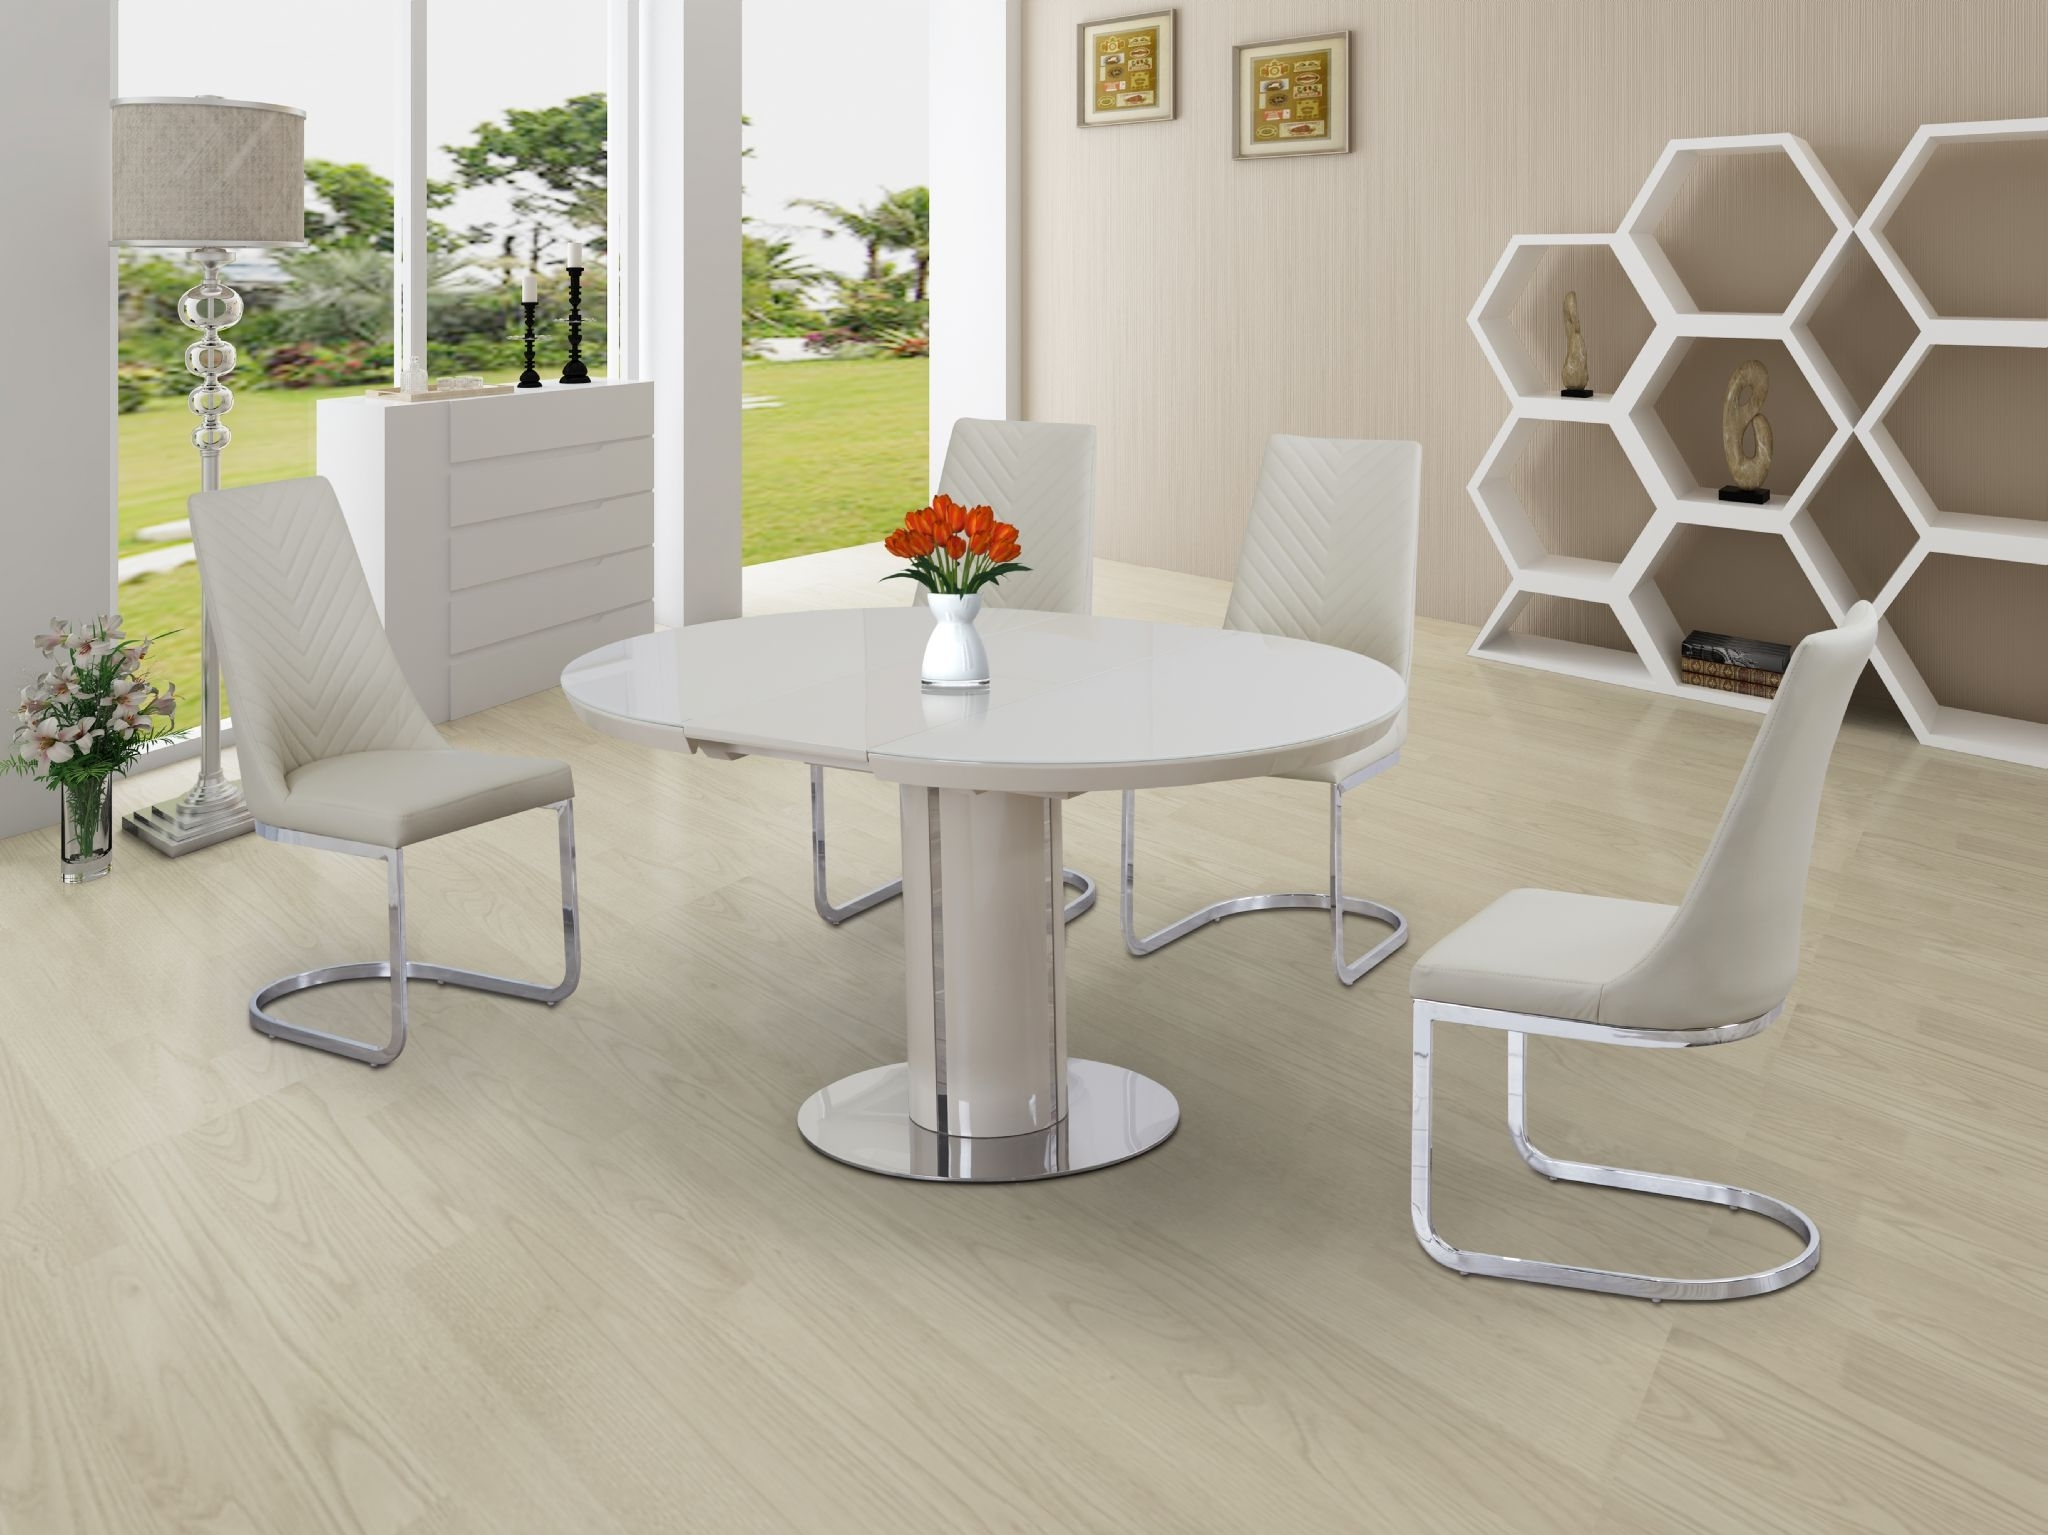 Eclipse Round Oval Gloss & Glass Extending 110 To 145 Cm Dining Inside Most Up To Date Round Extending Dining Tables And Chairs (View 2 of 25)